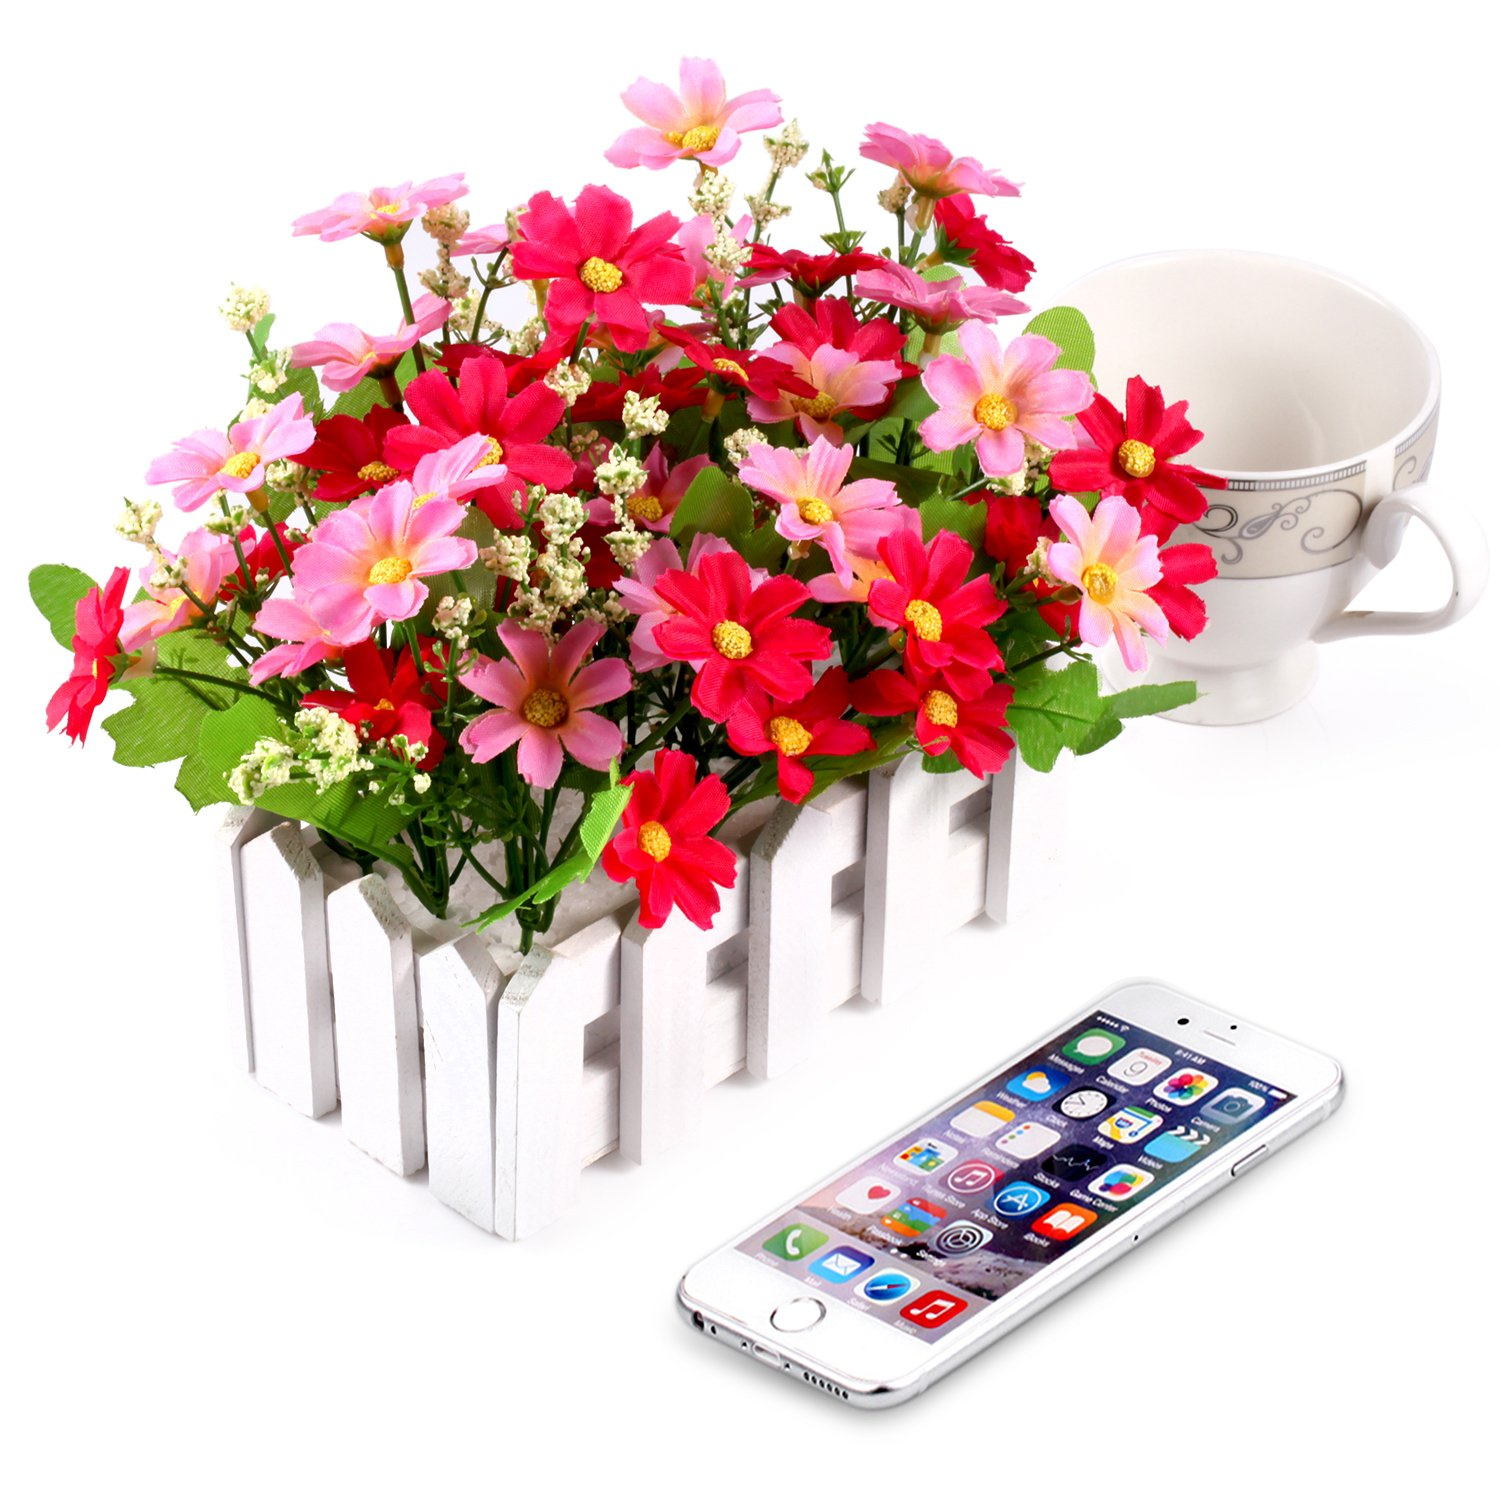 Louis Garden Artificial Flowers Fake Daisy in Picket Fence Pot Pack - Mini Potted Plant (Daisy-Pink) by Louis Garden (Image #3)